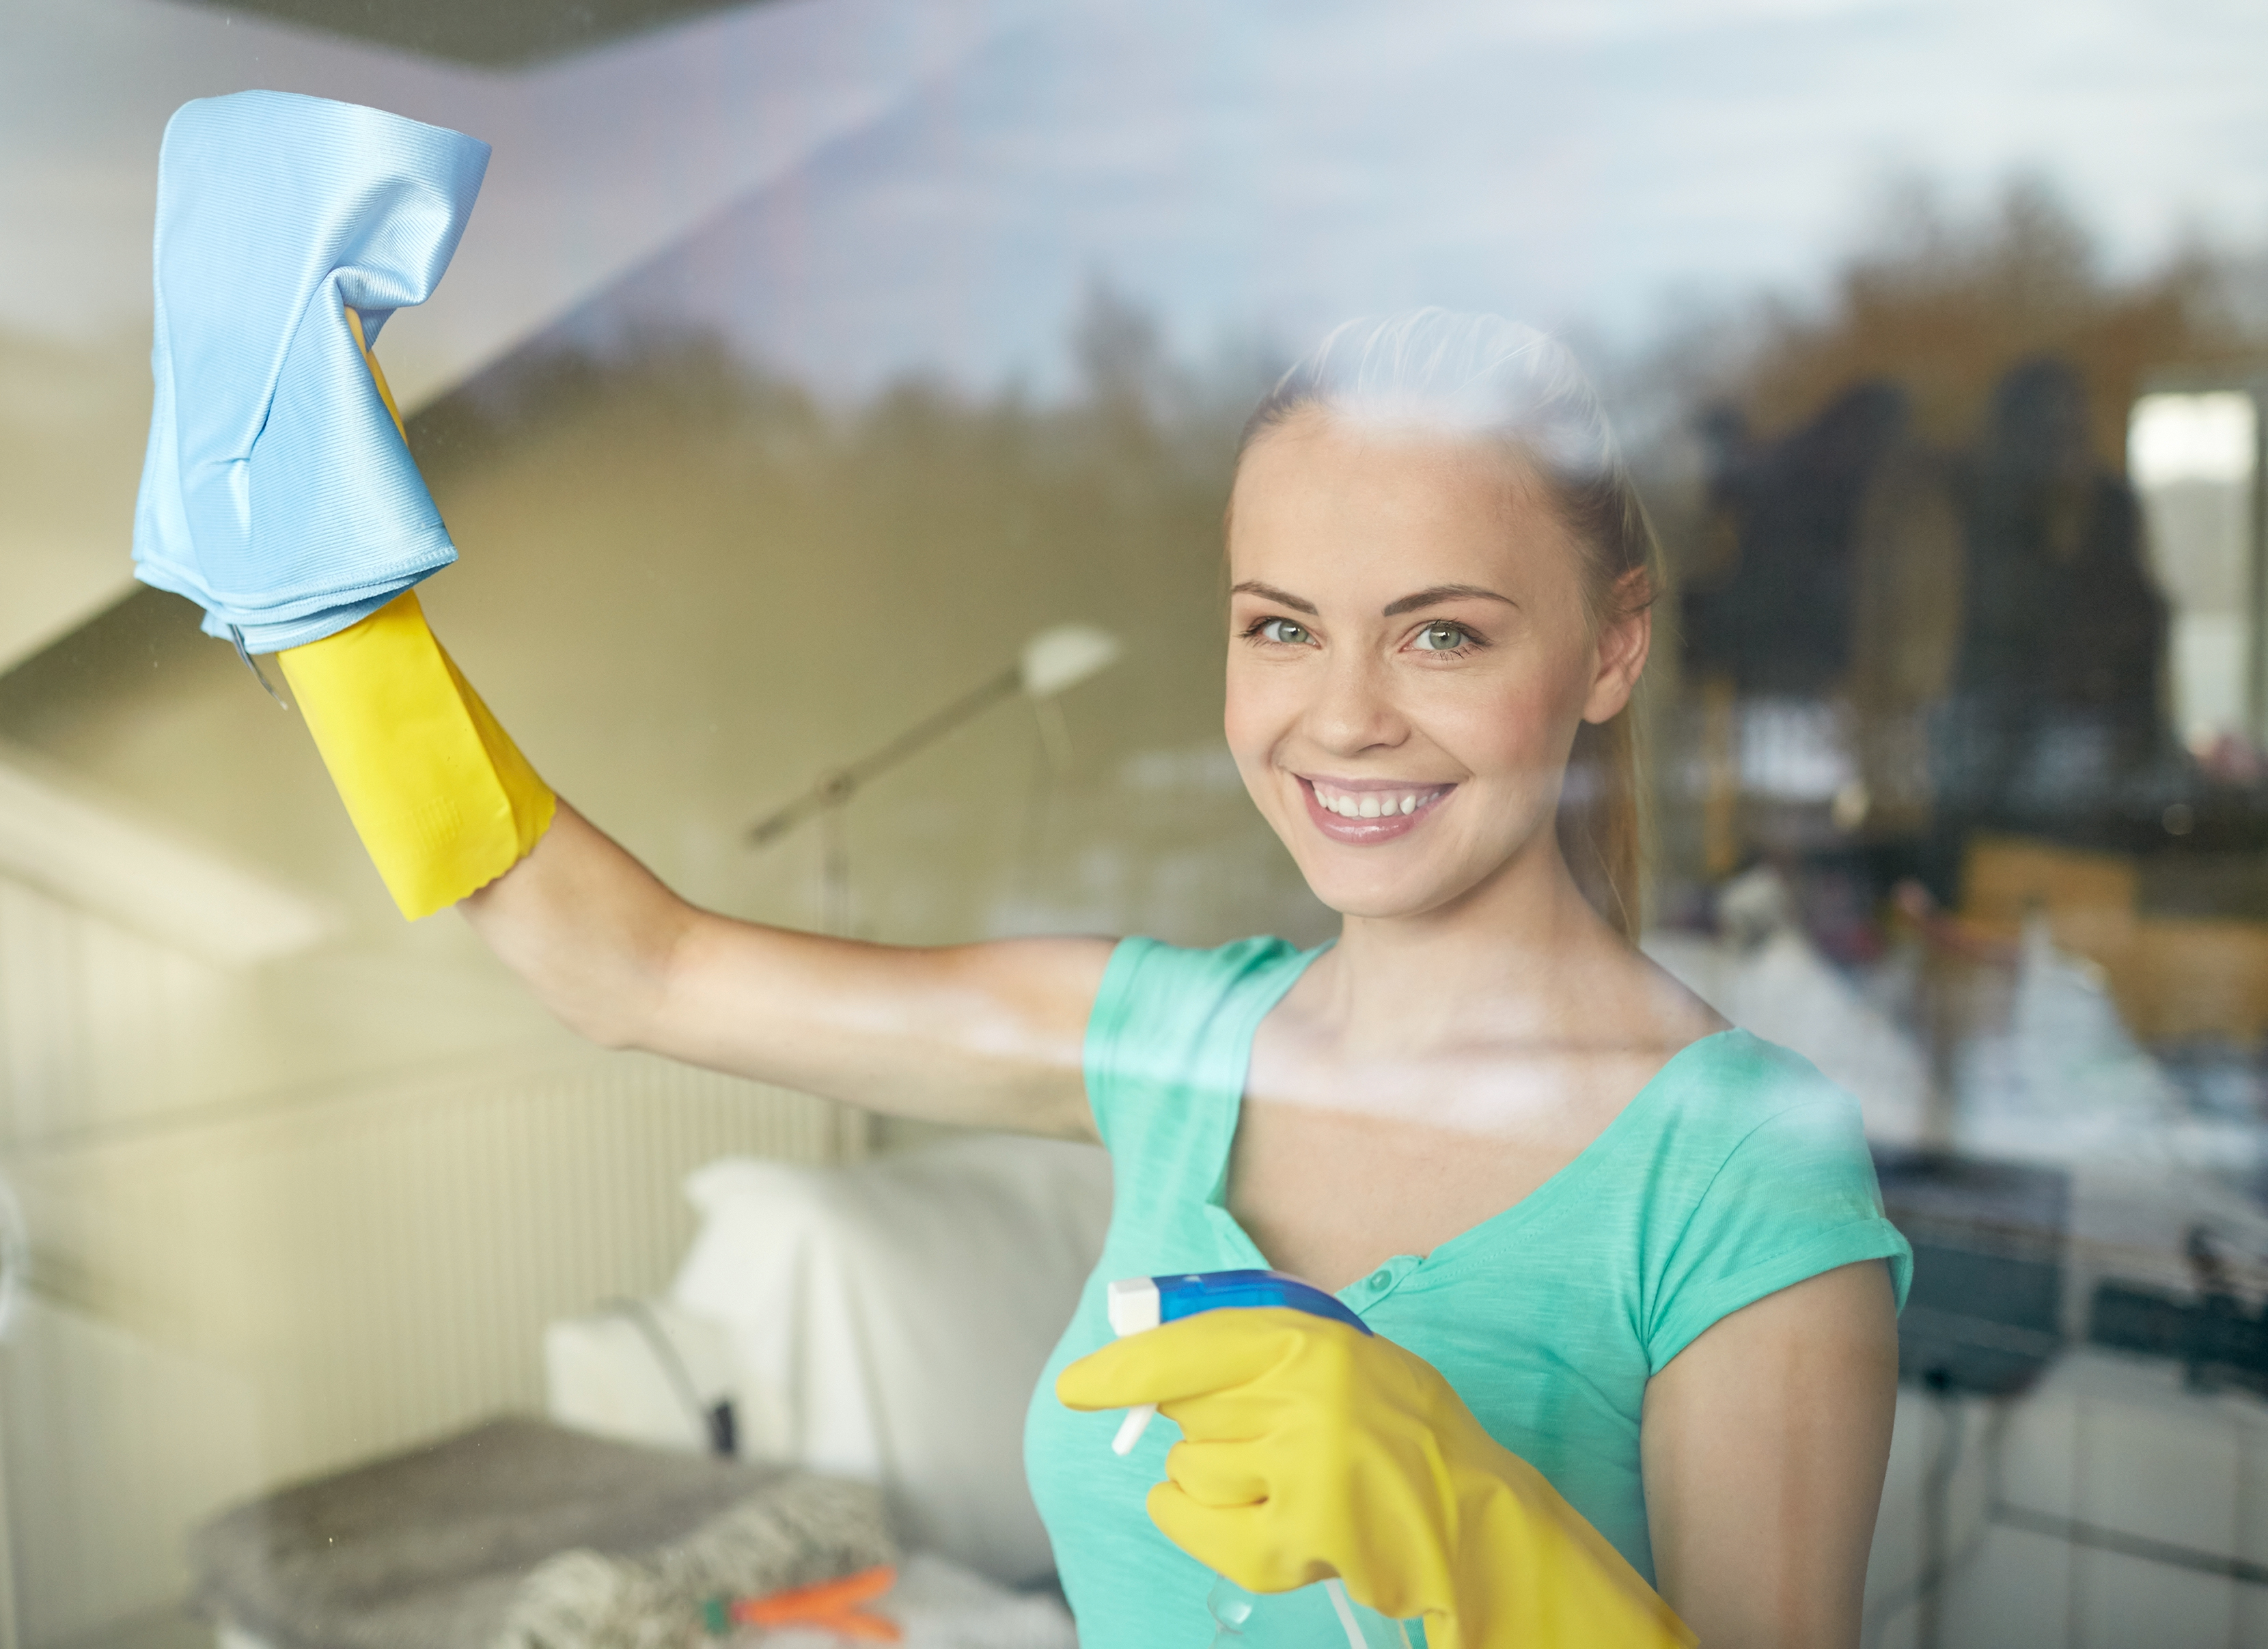 11201577-happy-woman-in-gloves-cleaning-window-with-rag.jpg